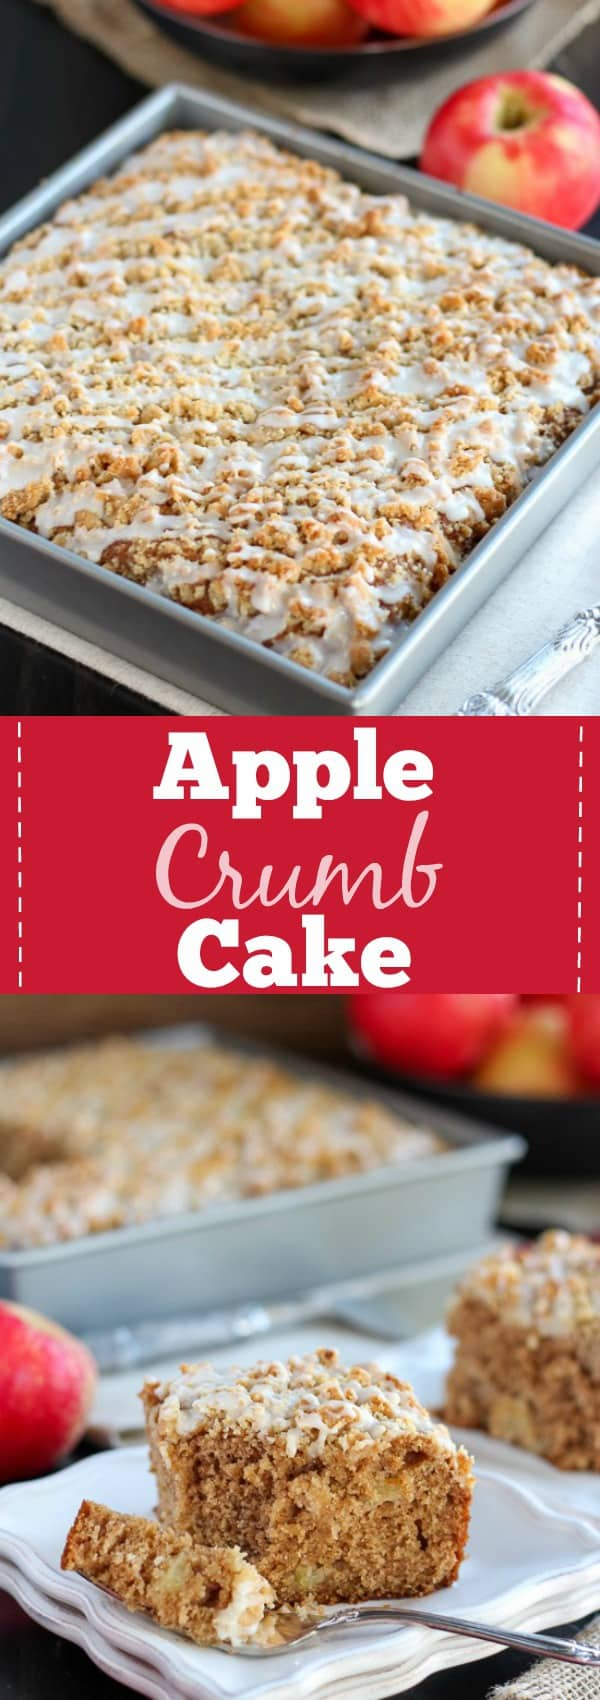 Apple Crumb Cake - A moist apple cake filled with fresh apples, apple butter, and applesauce, topped with a crumb topping and drizzled with icing.